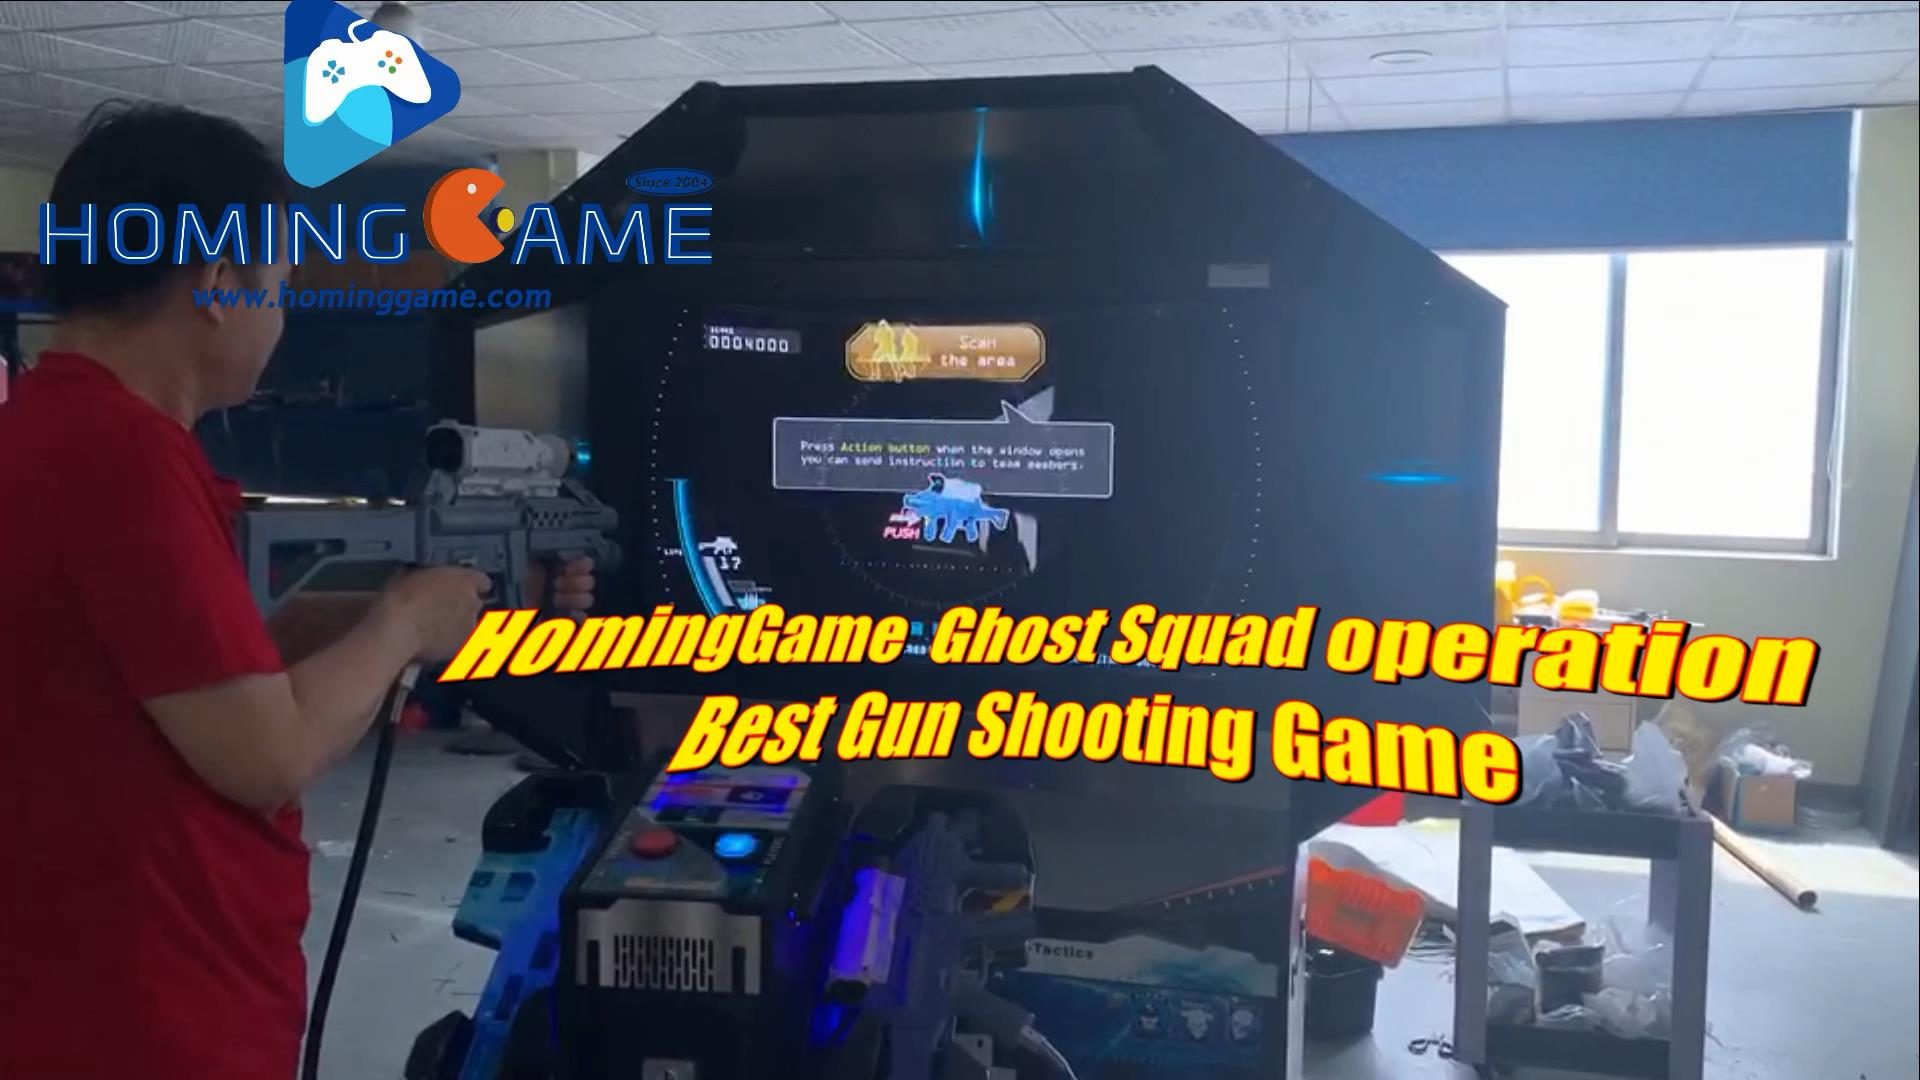 ghost squad,ghost squad simulator game machine,ghost squad gun shooting arcade game machine,ghost squad gun shooting arcade video game machine,ghost squad gun shooting simulator arcade game machine,gun shooting arcade game machine,gun shooting simulator game machine,simulator game machine,arcade video game machine,video game machine,game machine,arcade game machine,coin operated game machine,amusement machine,amusement park game equipment,indoor game equipment,coin games,electrical game machine,amusement,indoor games,hominggame,www.gametube.hk,hominggame gun shooting arcade game machine,coin operated gun shooting arcade game machine,gun games,gun simulator game machine,shooting game,shooting gun game machine,shooting gun game,electrical game